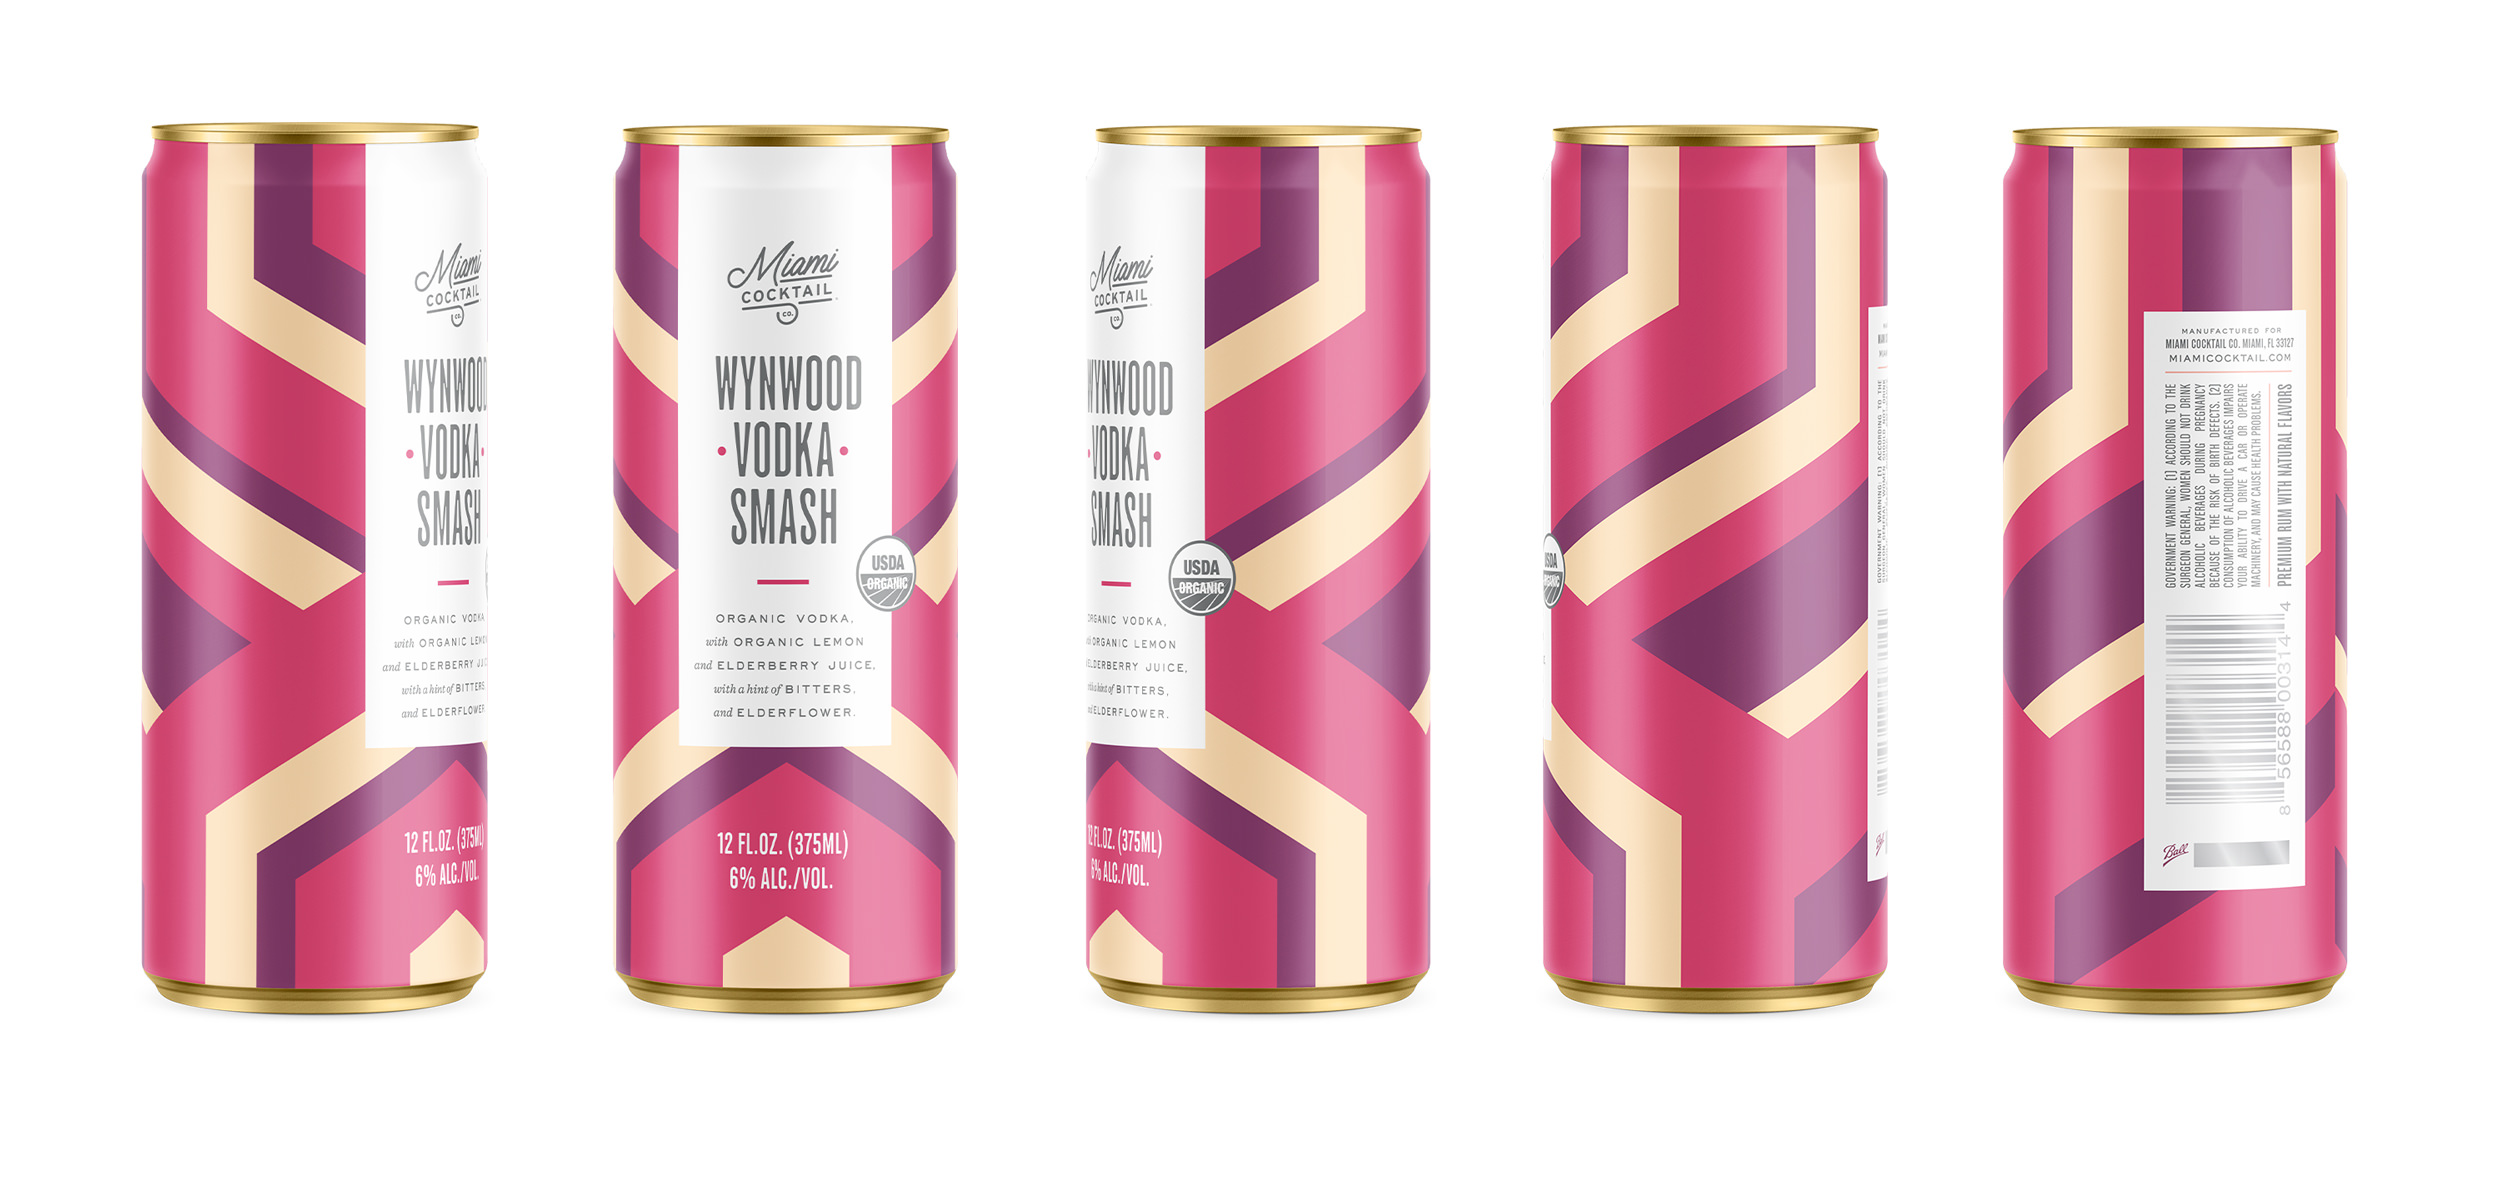 Chad Roberts Design Ltd. Miami Cocktail Company Wynwood Originals Sparkling Craft Wine Cocktail Package Design